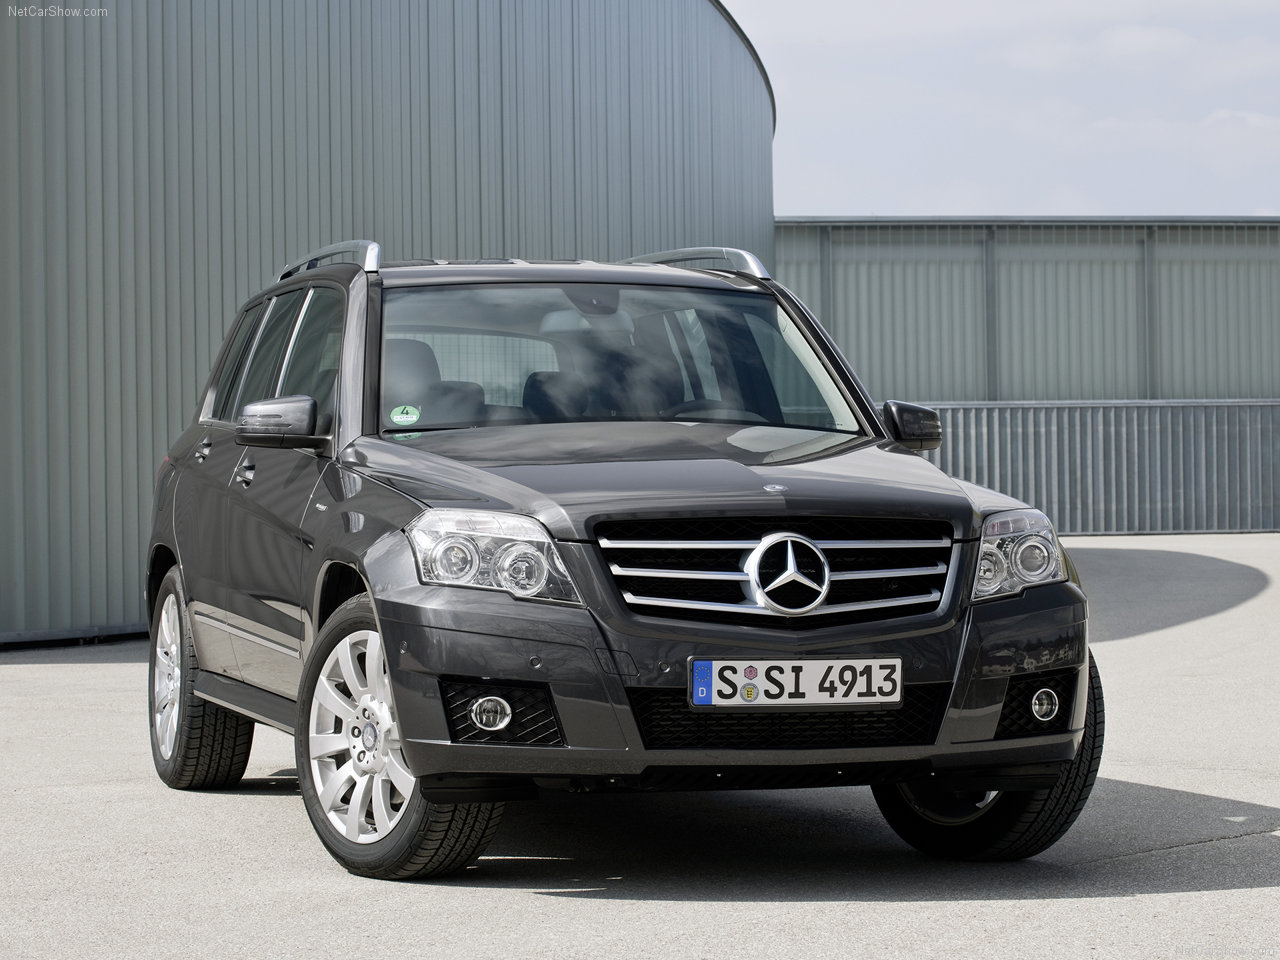 2010 mercedes benz glk class mercedes benz cars. Black Bedroom Furniture Sets. Home Design Ideas